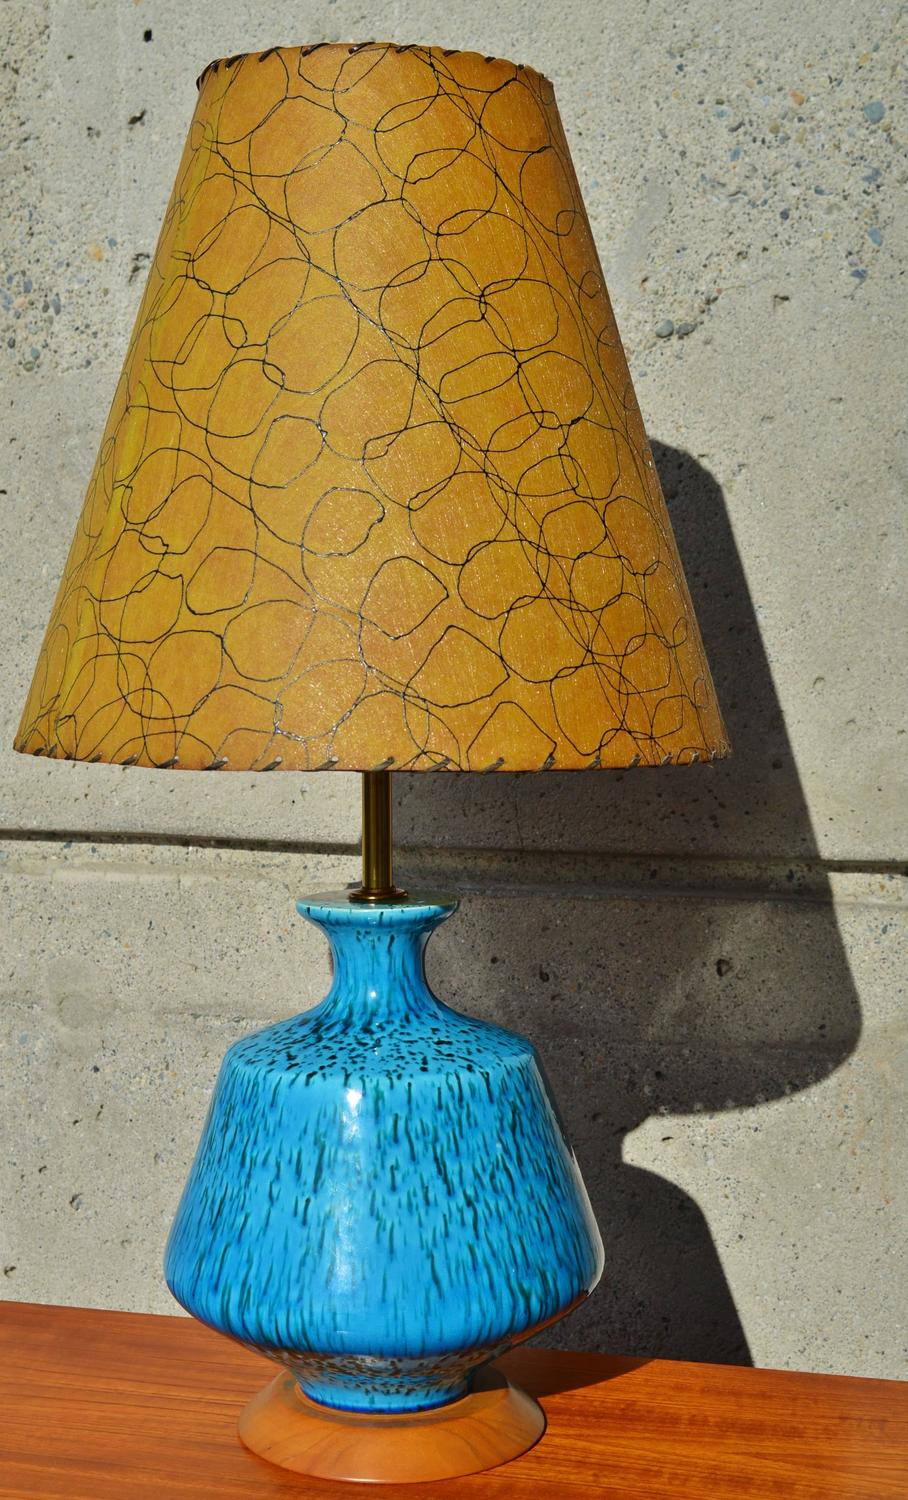 Striking Blue Ceramic Lamp with Hand-Painted Fiberglass Shade at 1stdibs